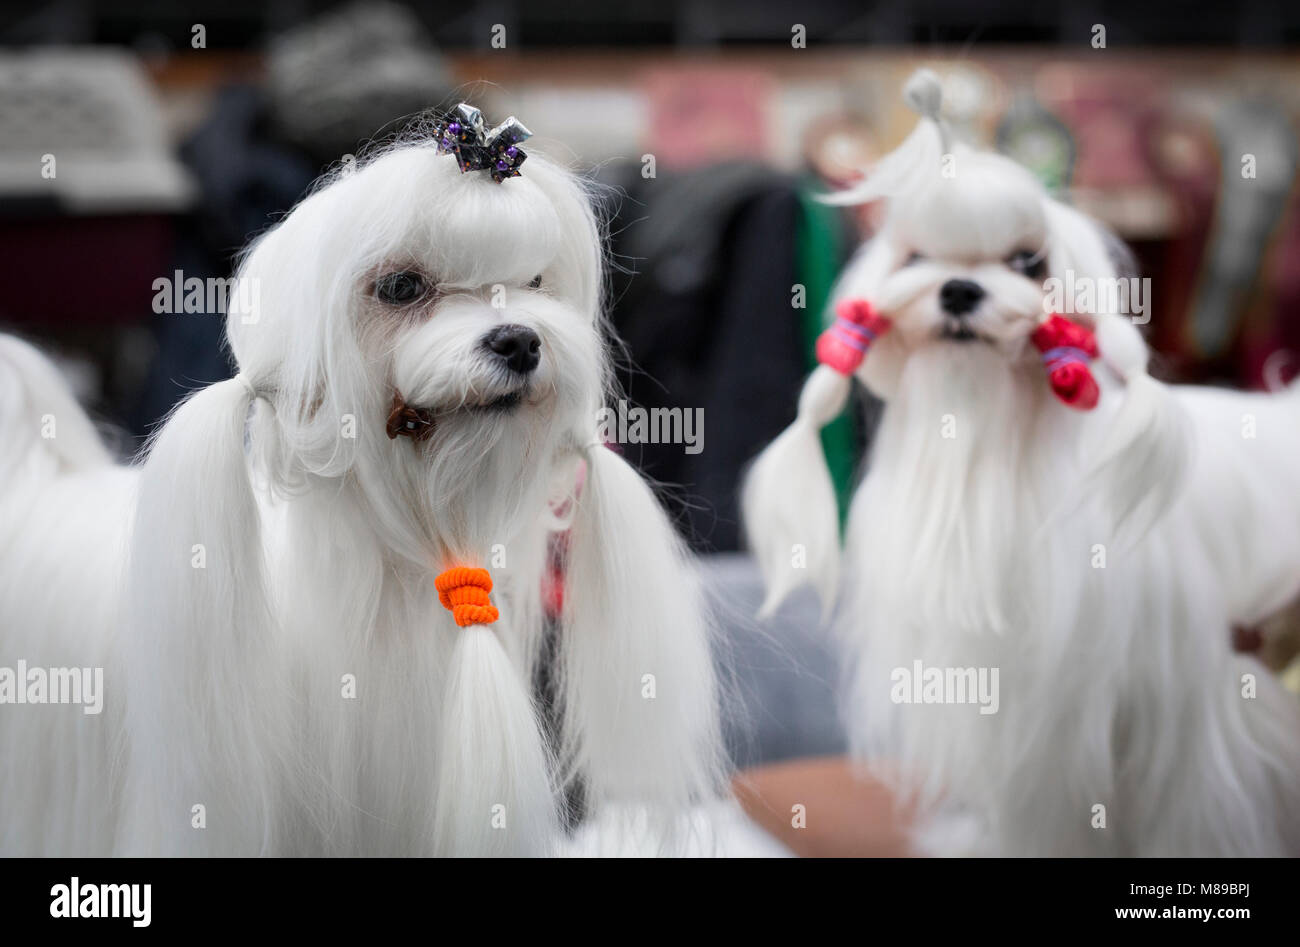 Two Maltese dogs at Crufts dog show in the UK - Stock Image